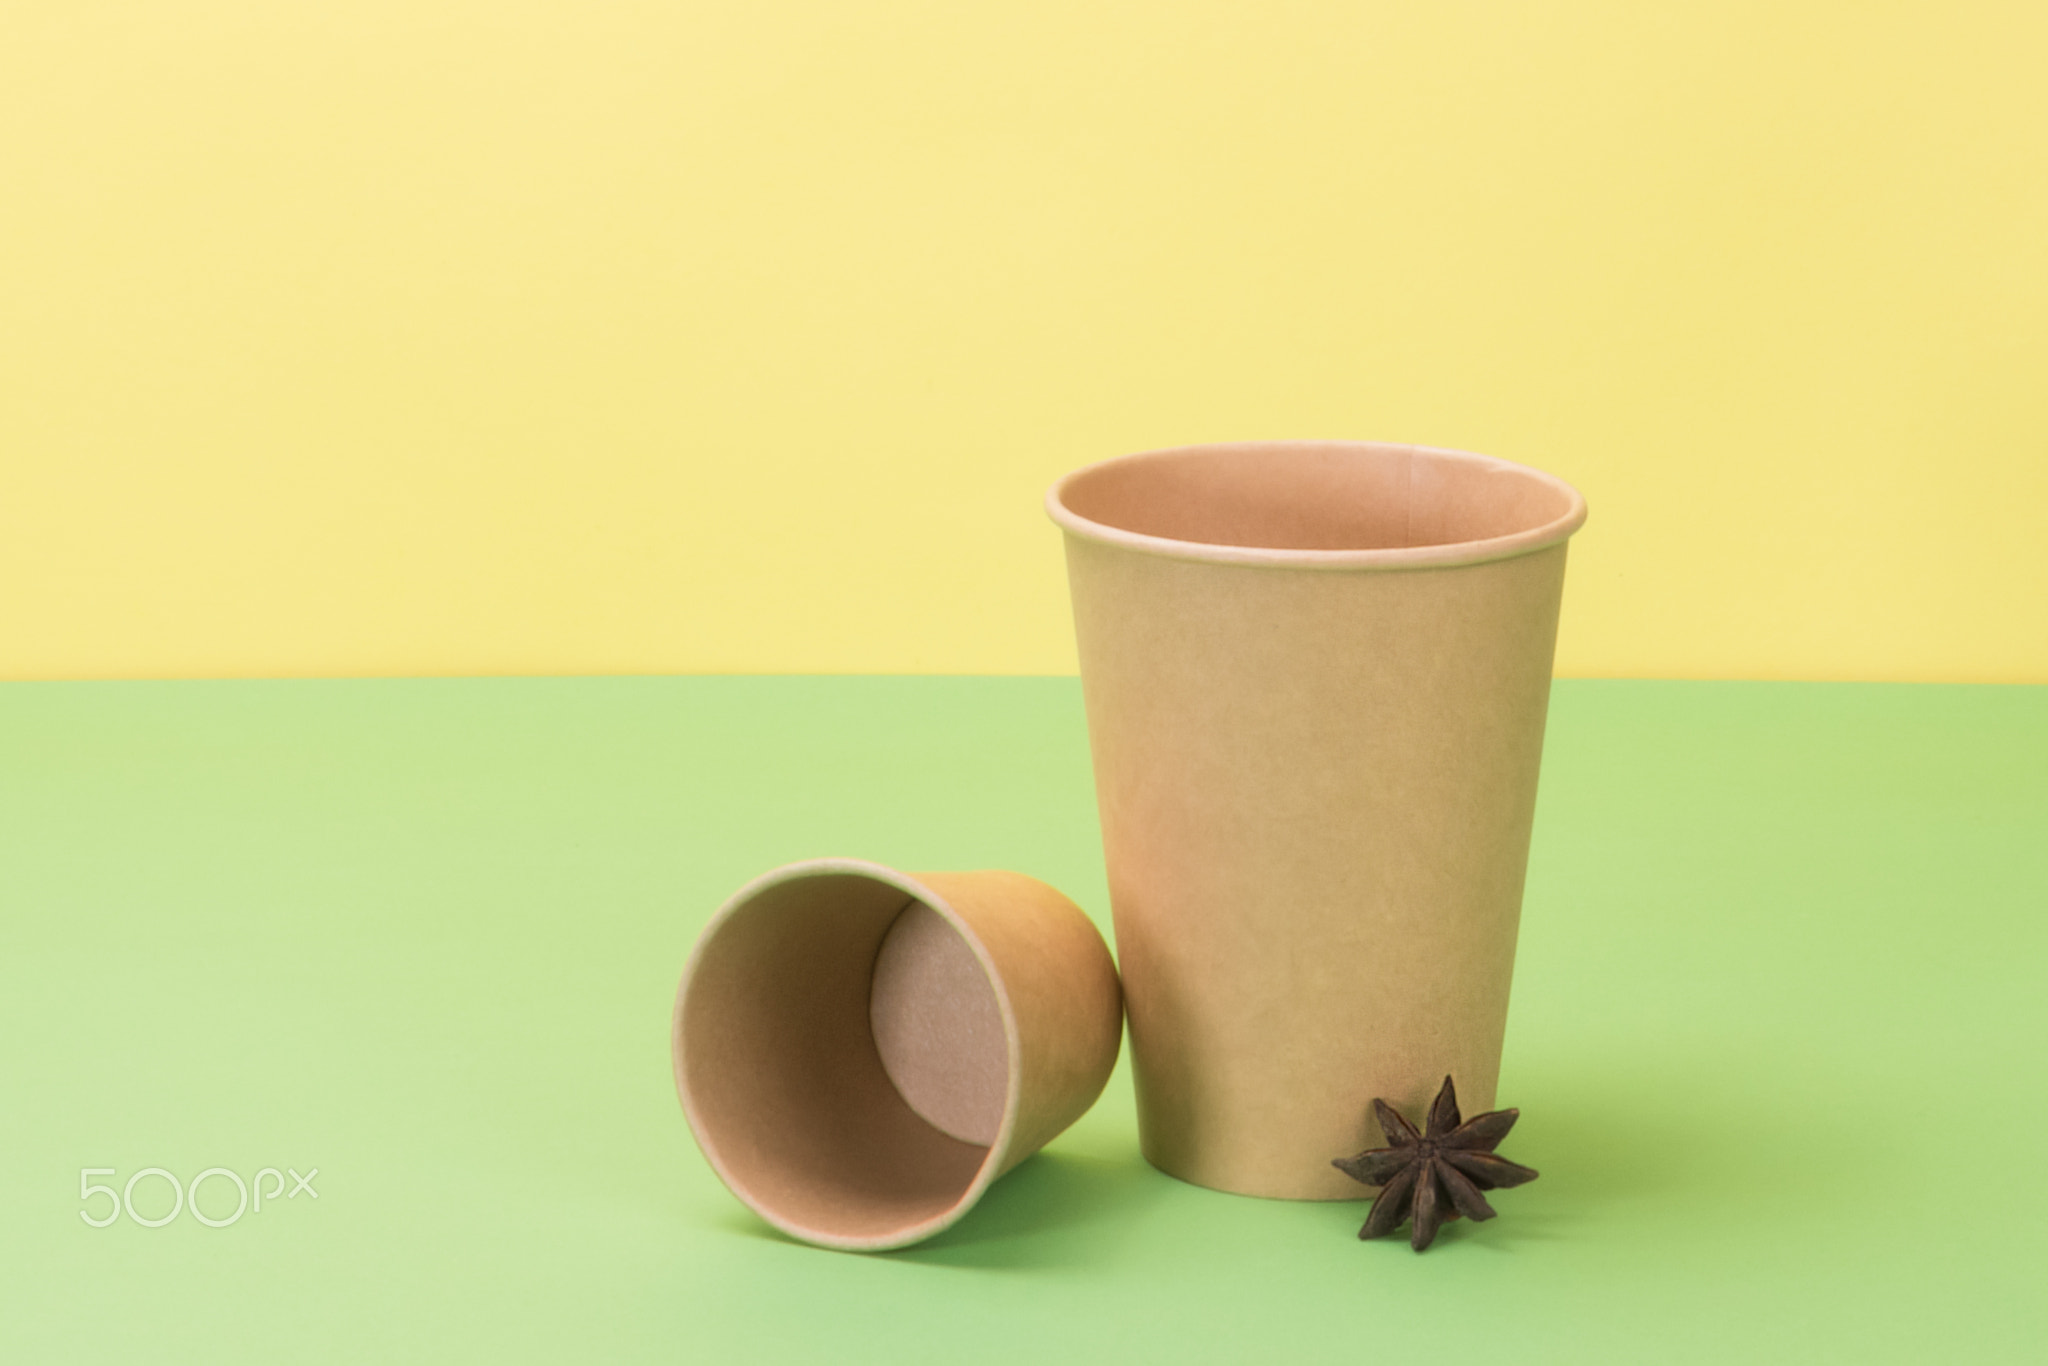 Kitchenware environmental and star anise on yellow, green background.